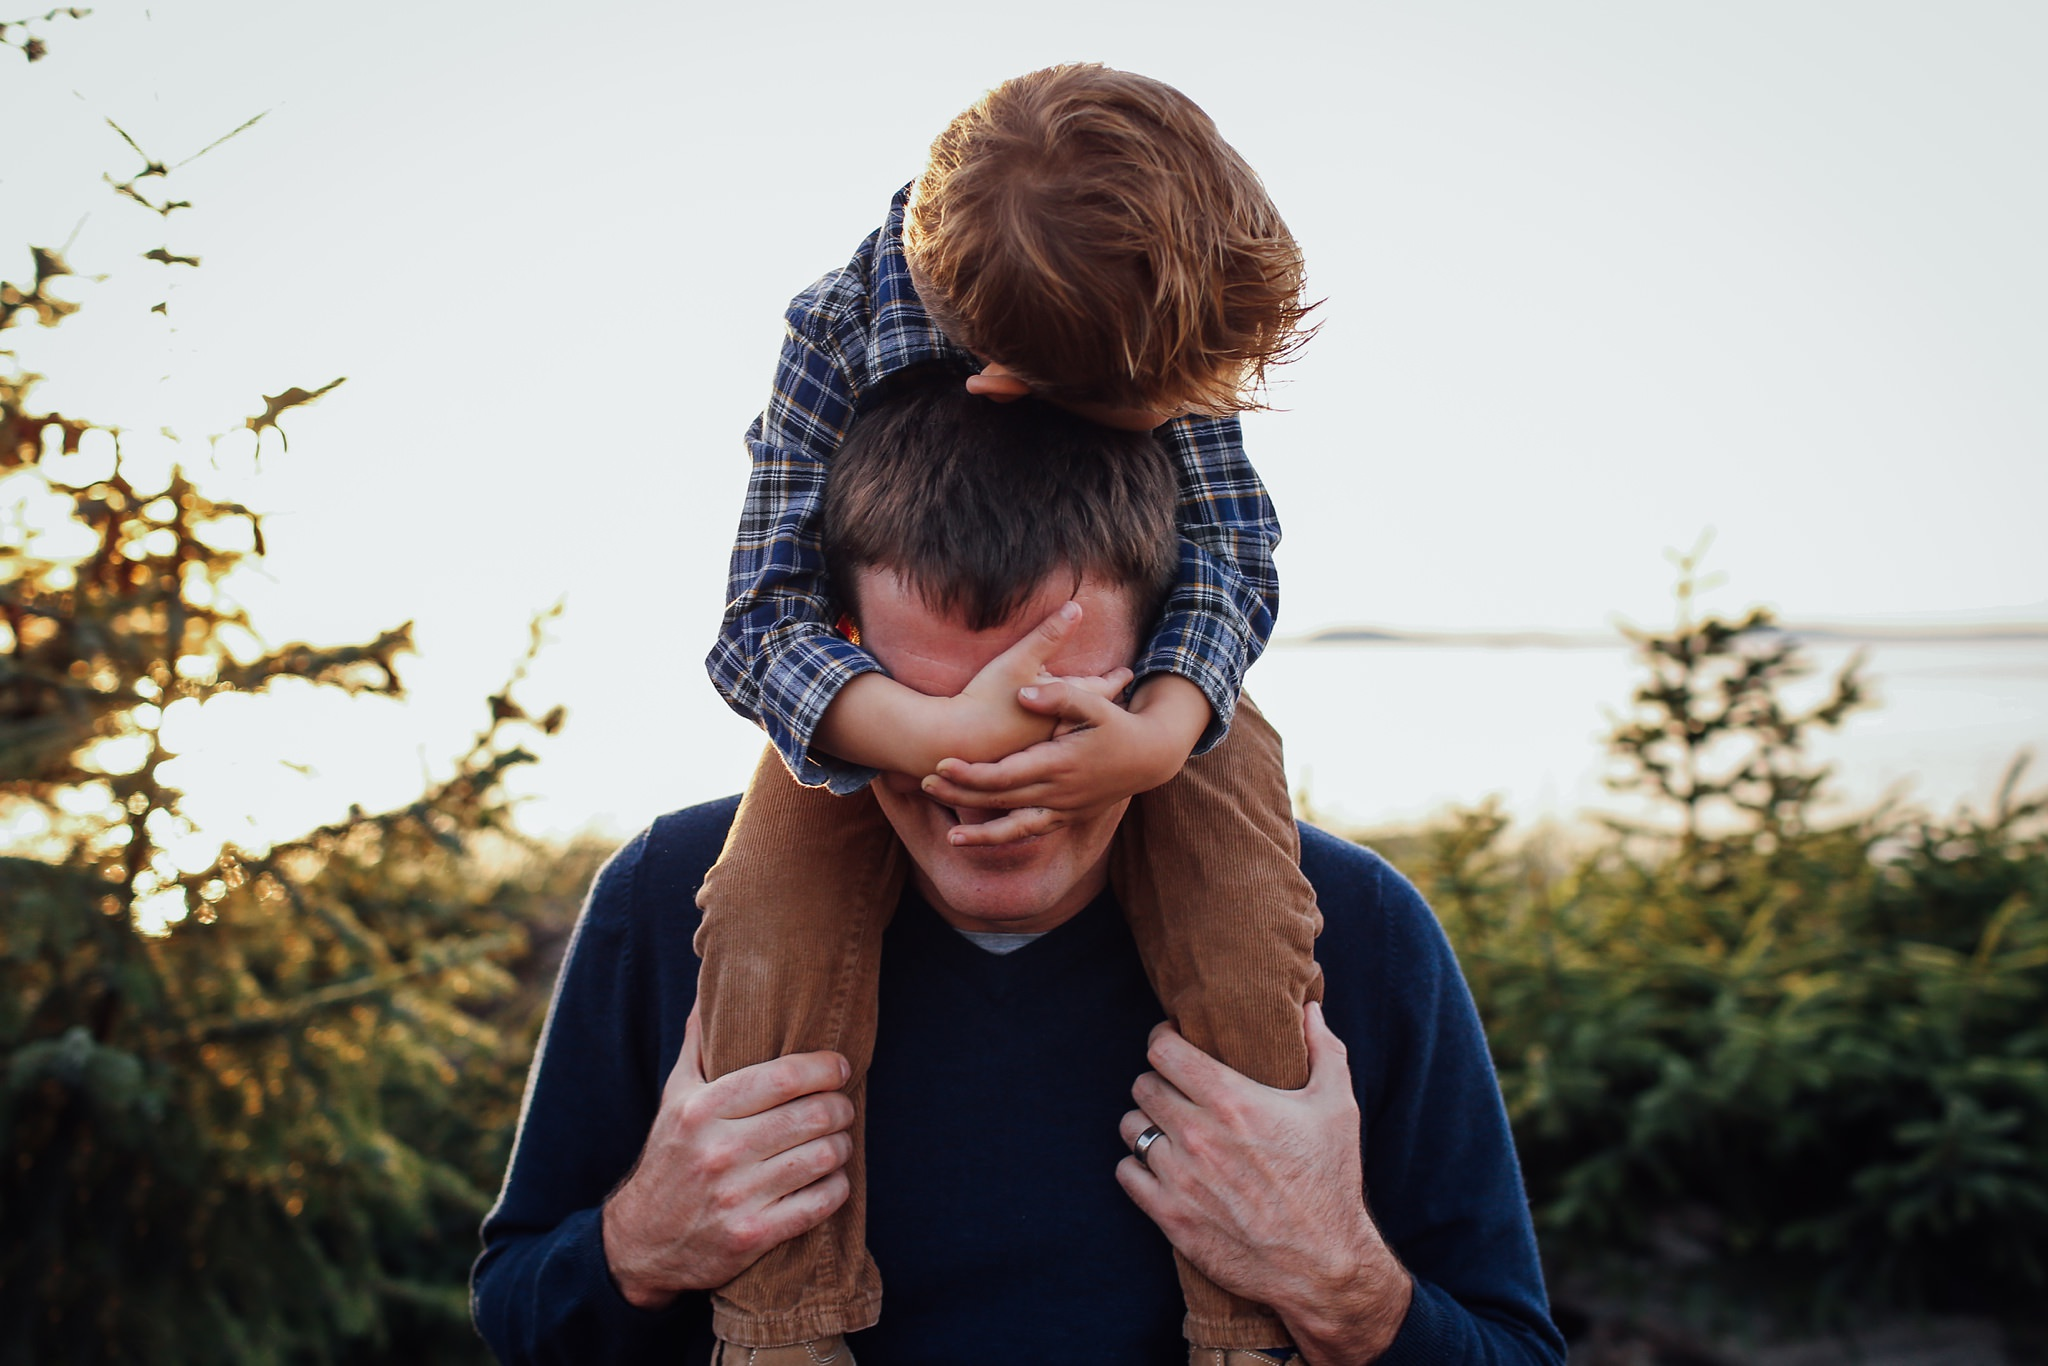 Whidbey-Island-Family-Photographer-Kara-Chappell-Photography_1193.jpg